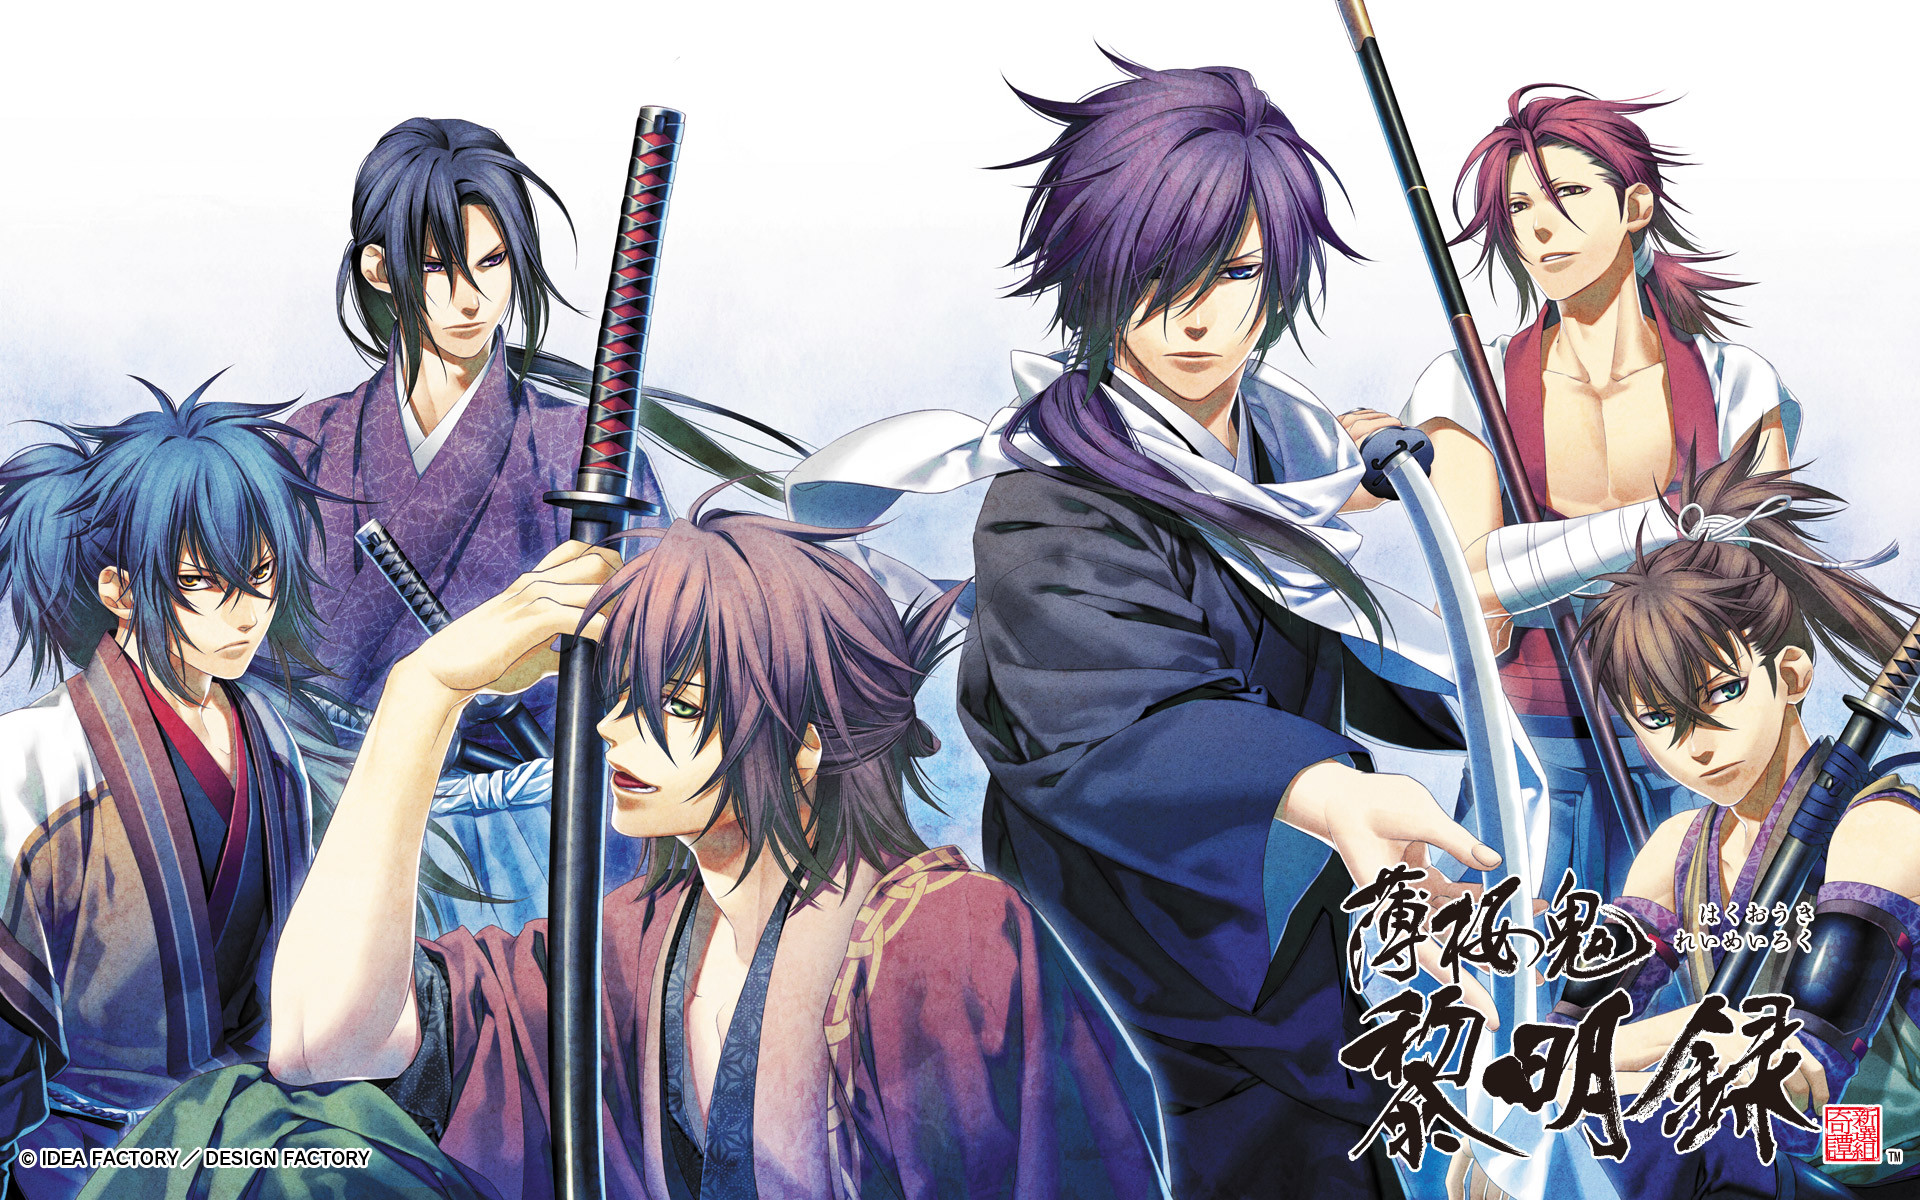 Res: 1920x1200, Anime - Hakuouki Shinsengumi Kitan Wallpaper